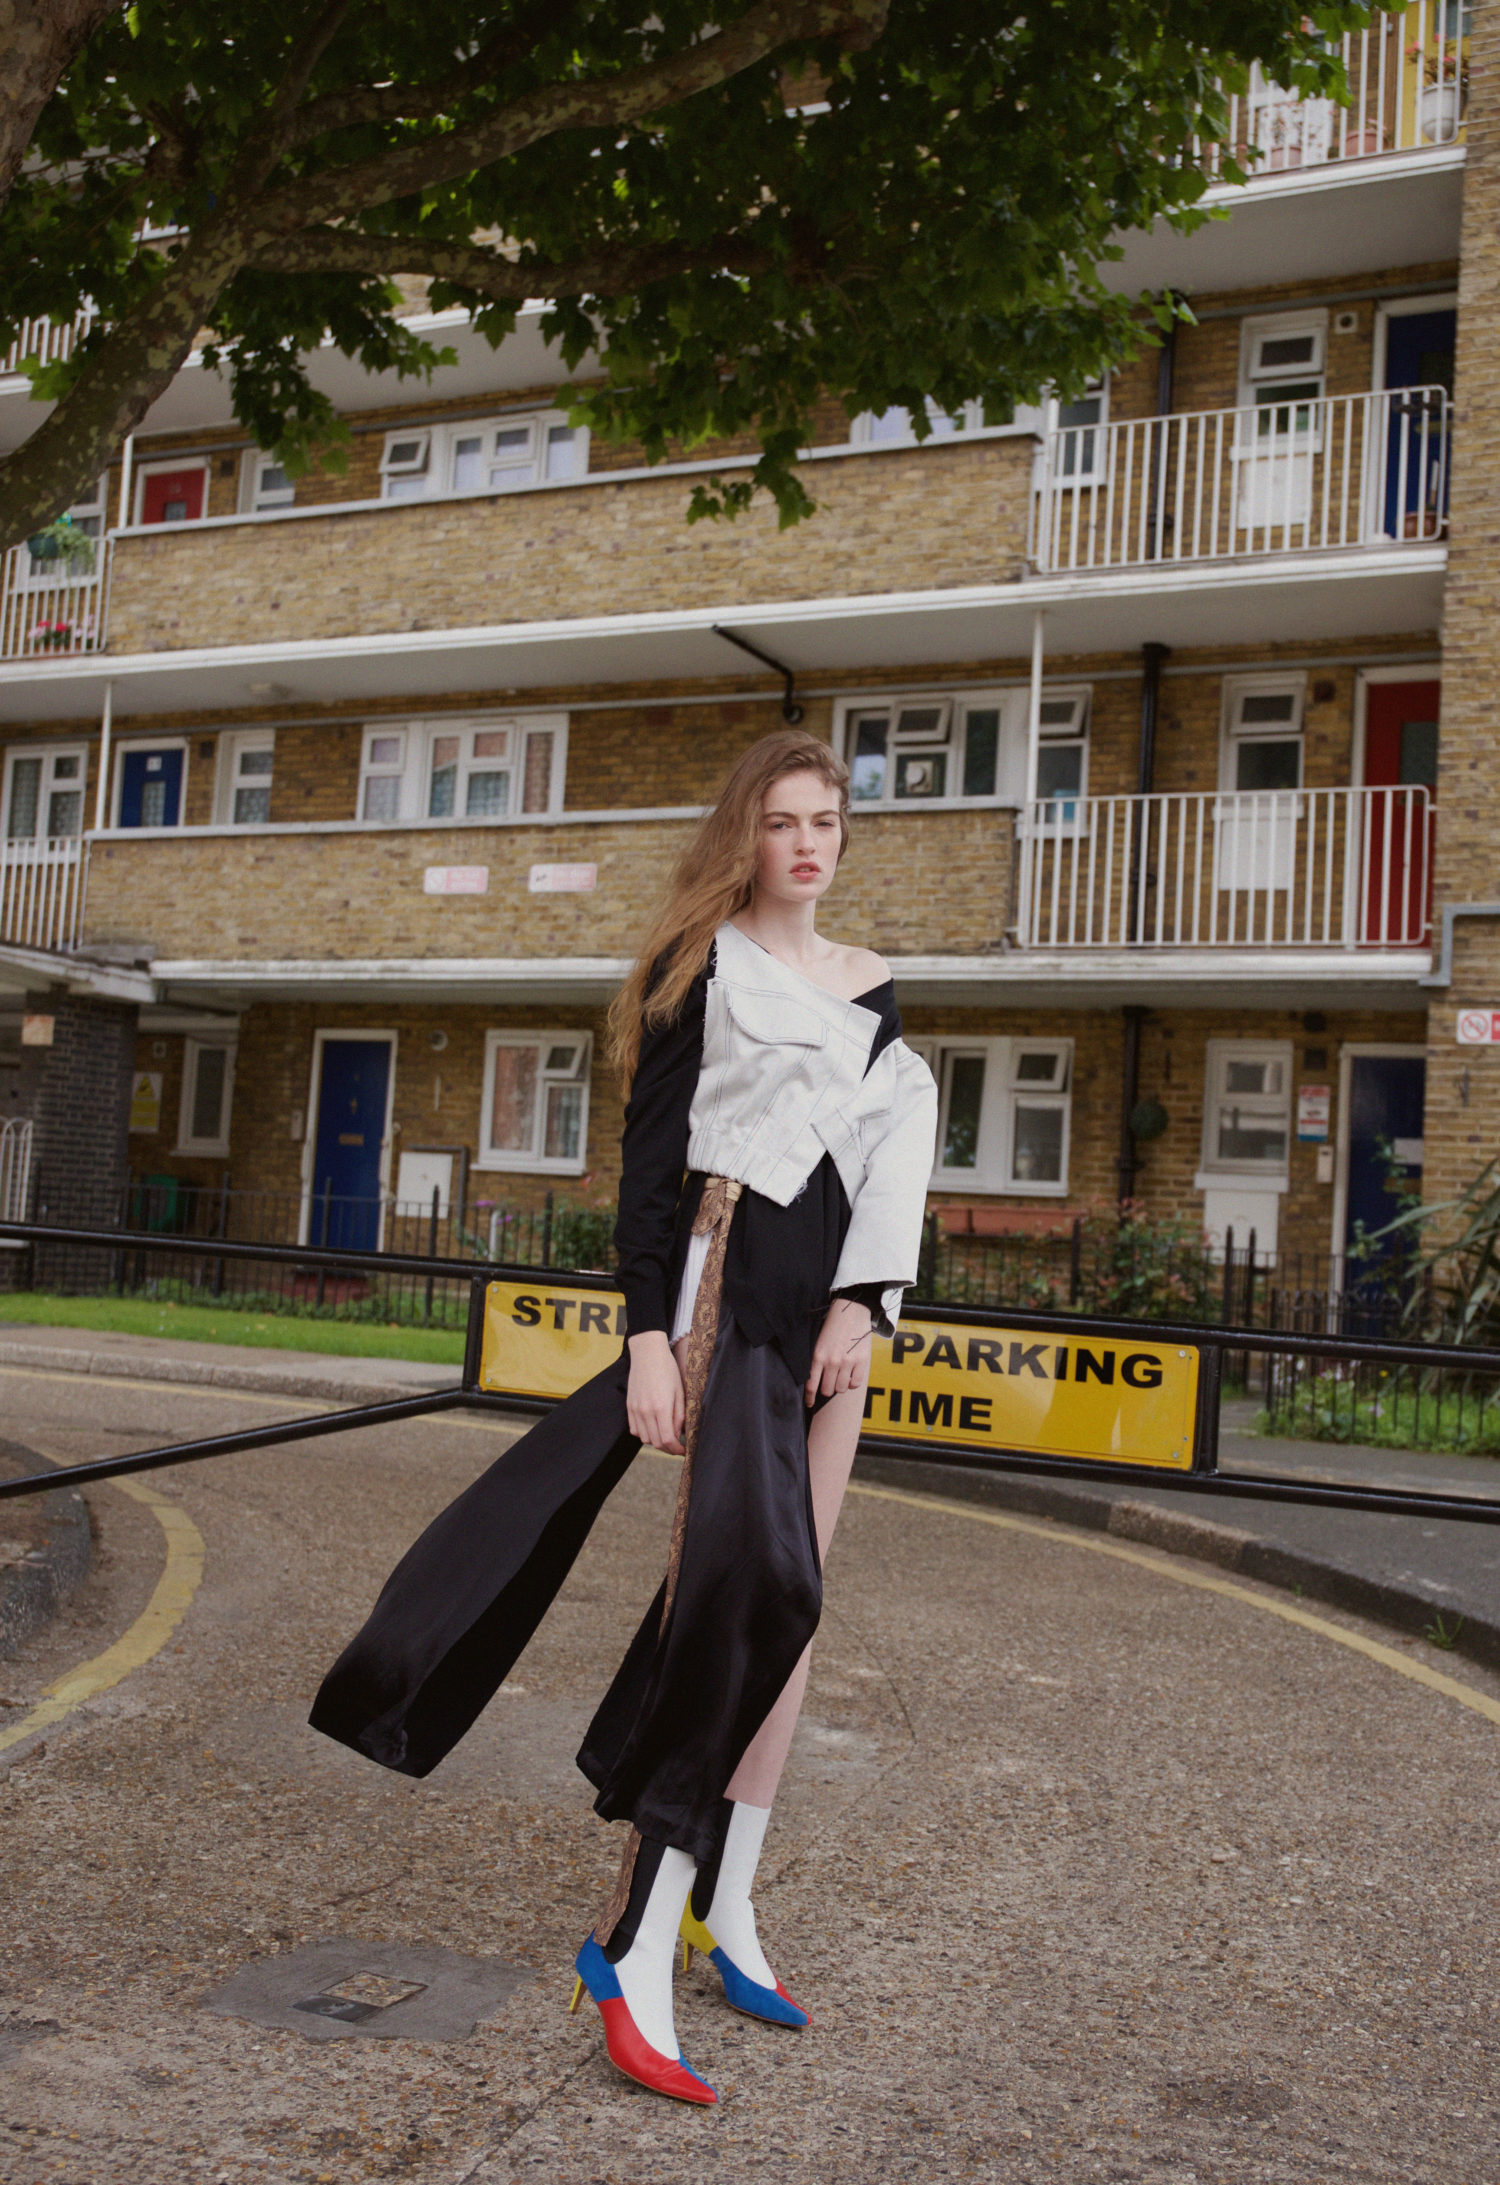 Glamorous suburbs an editorial by celine hong 1